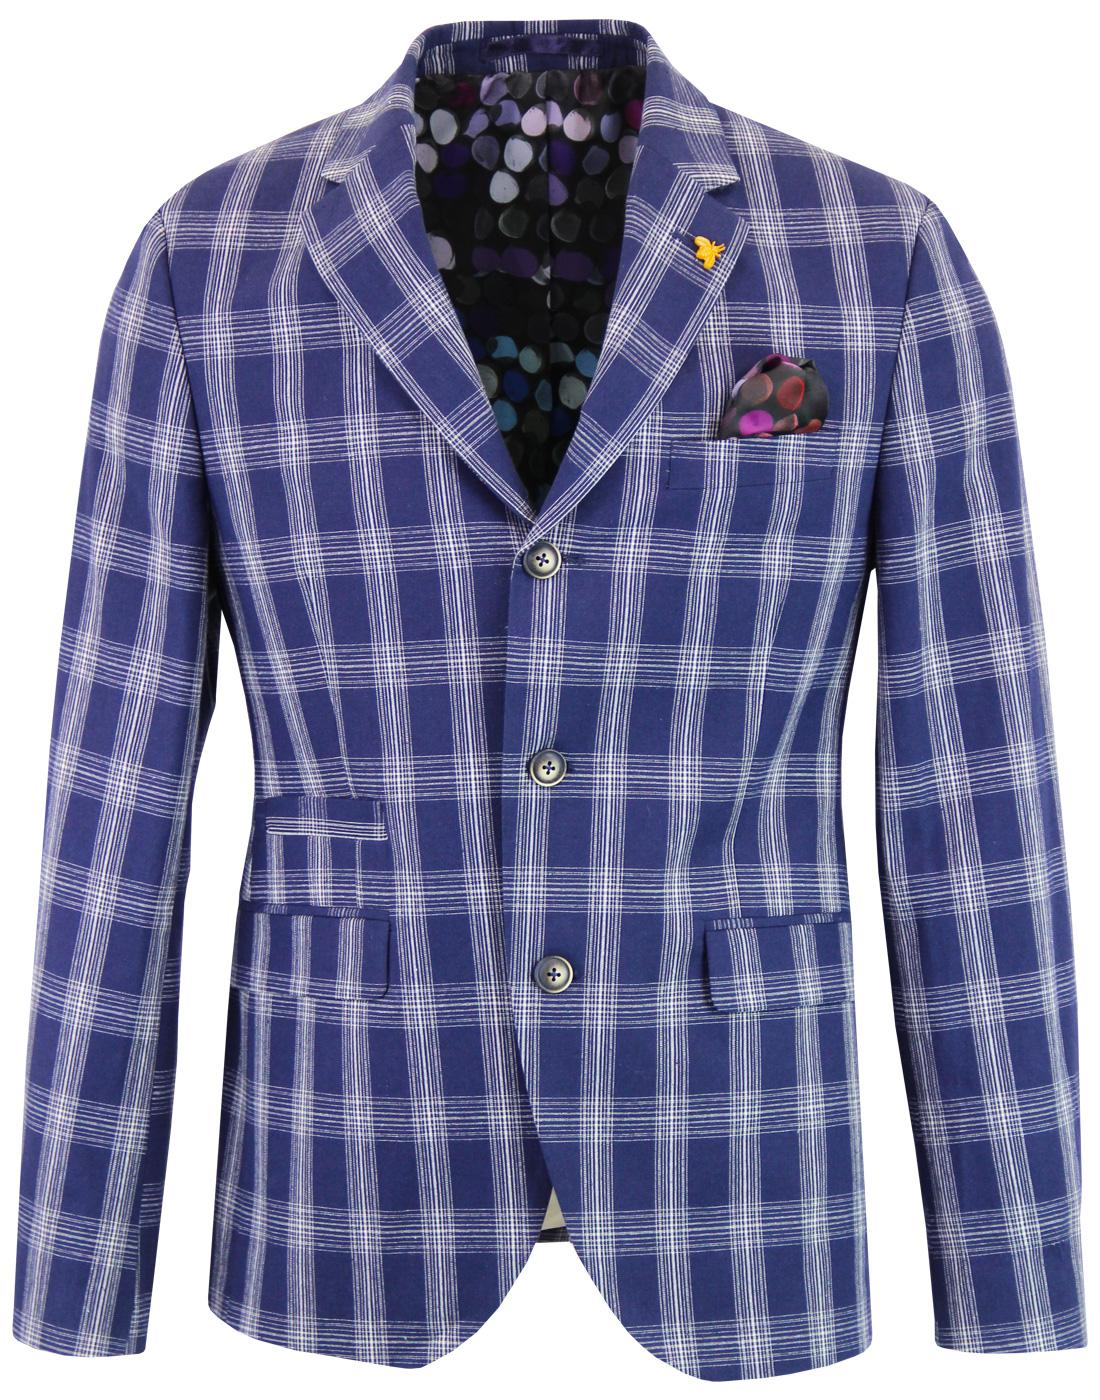 Moorgate GIBSON LONDON Check Ivy League Blazer